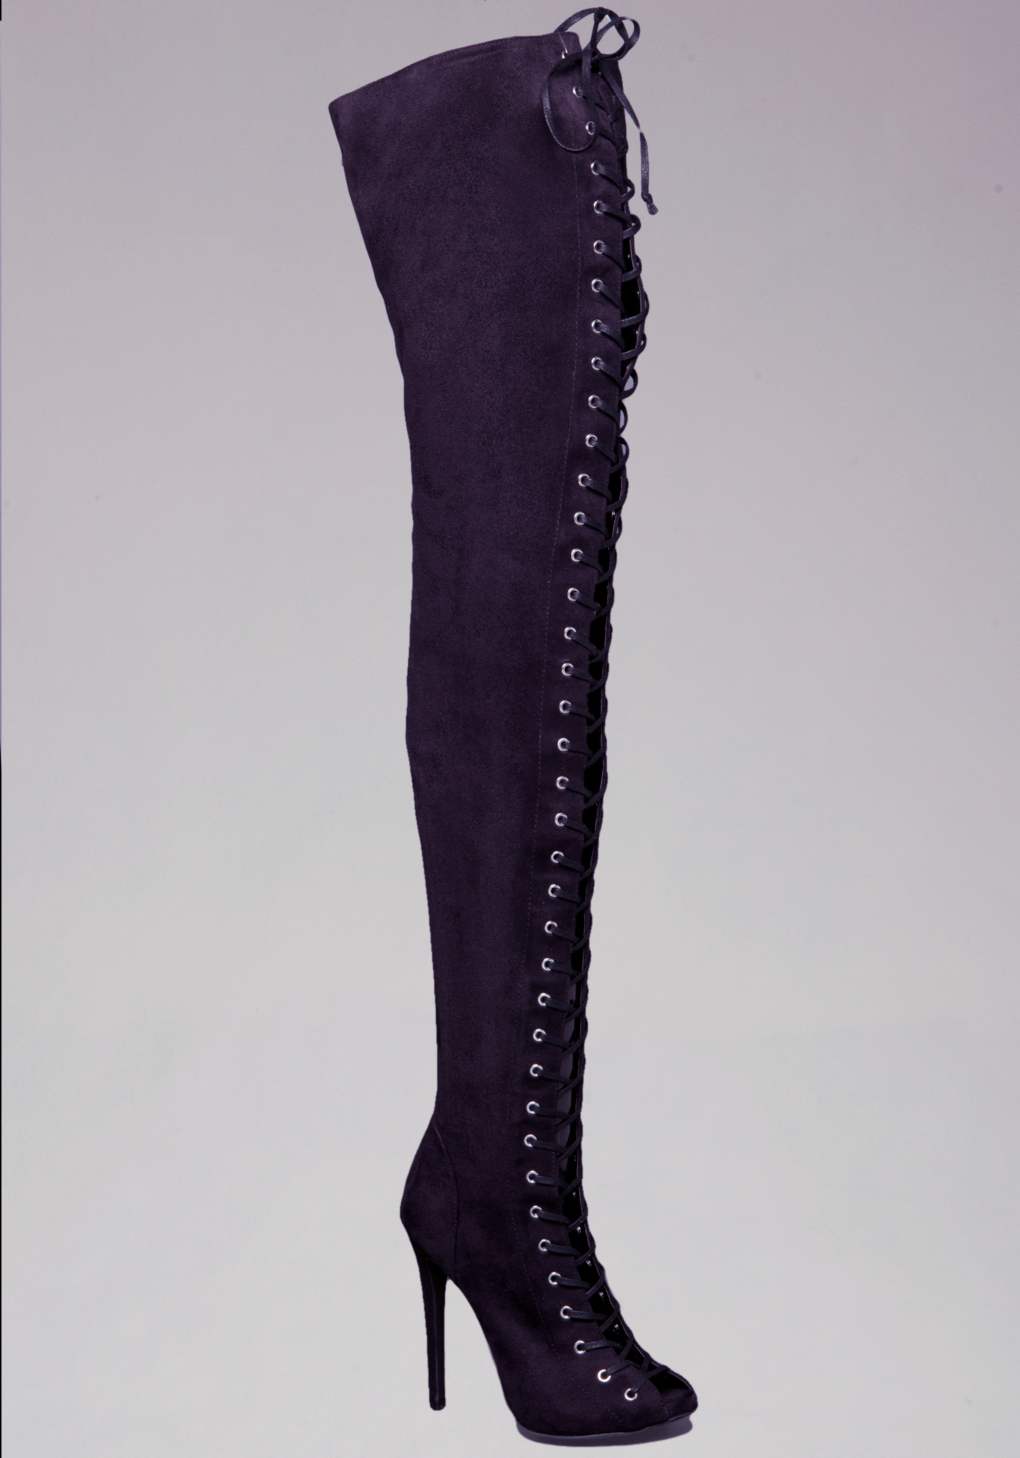 dcebbeb249c Lyst - Bebe Taryn Lace Up Over Knee Boots in Black